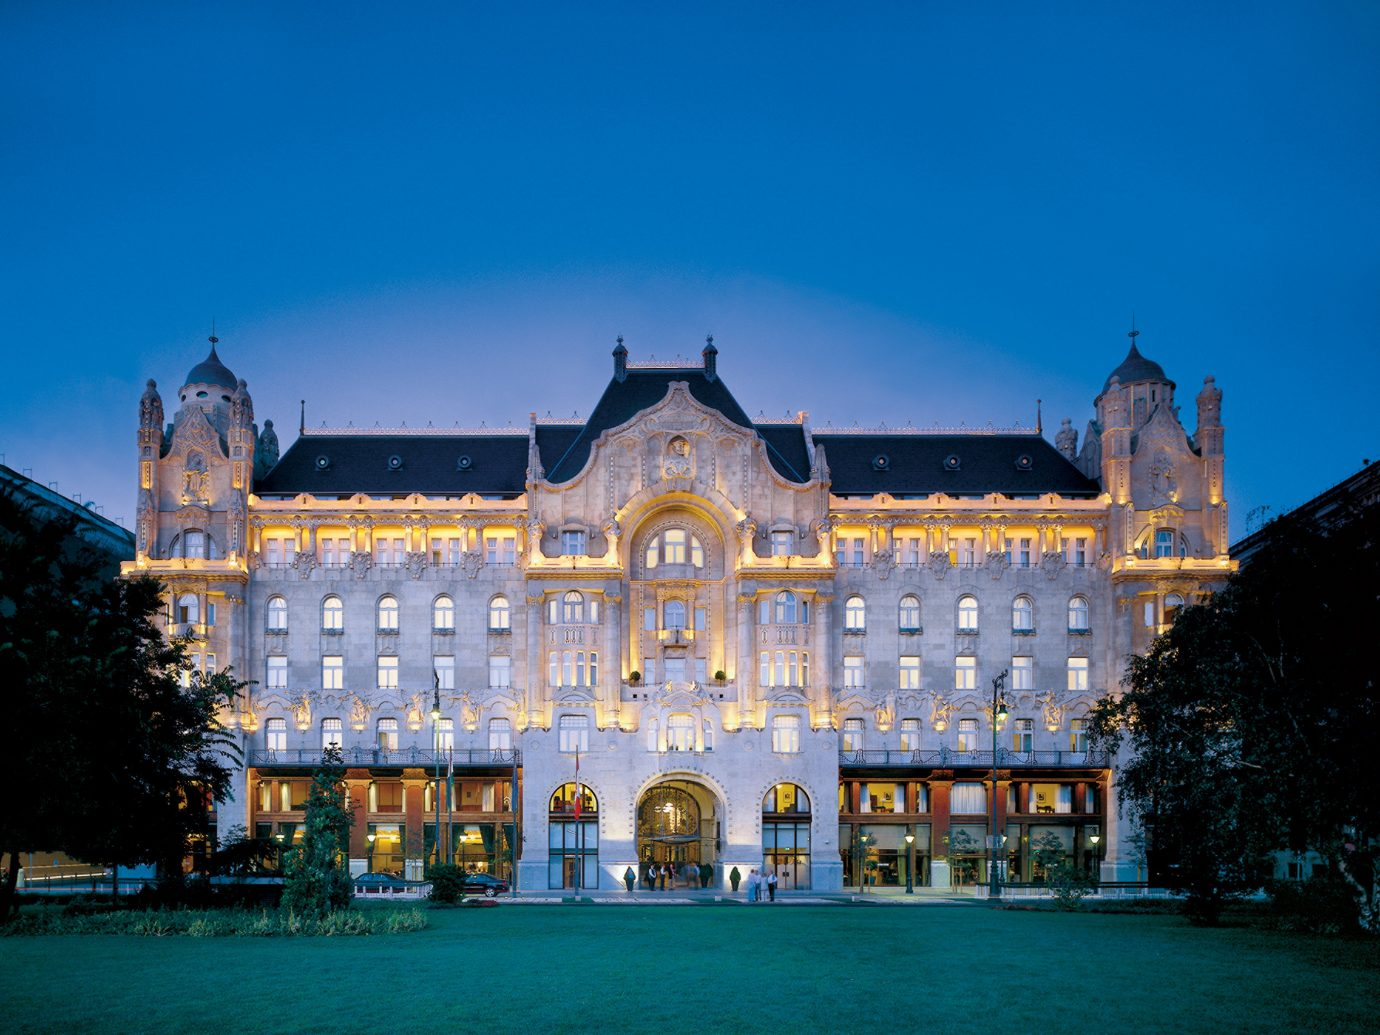 Architecture Budapest Buildings Elegant europe Exterior Garden Grounds Historic Hotels Hungary Luxury building outdoor sky landmark night house palace estate cityscape evening plaza town square